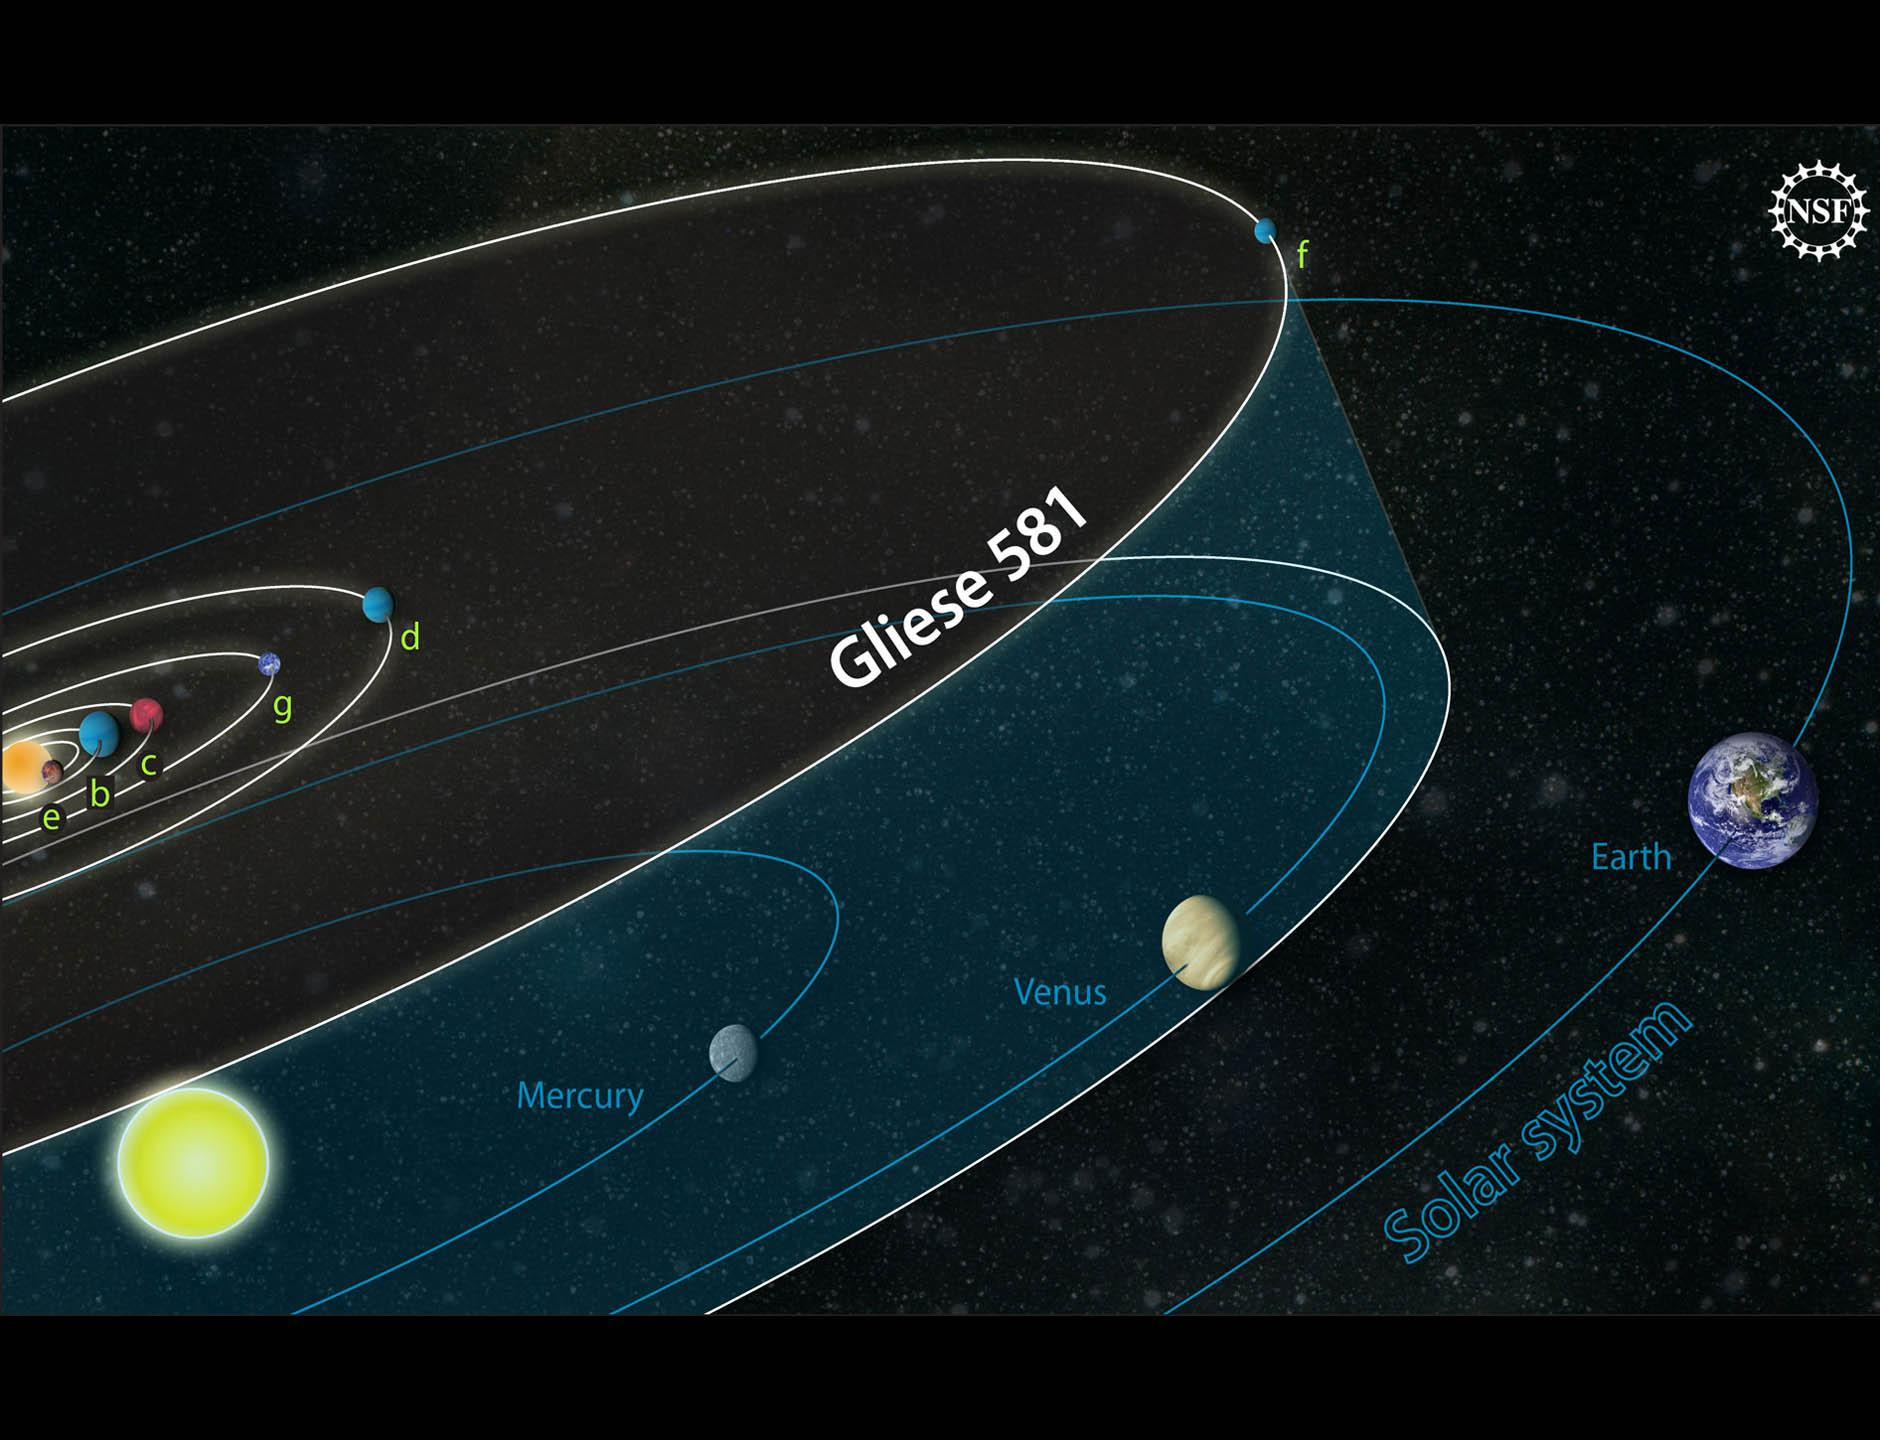 gliese 581g to earth comparison - photo #13